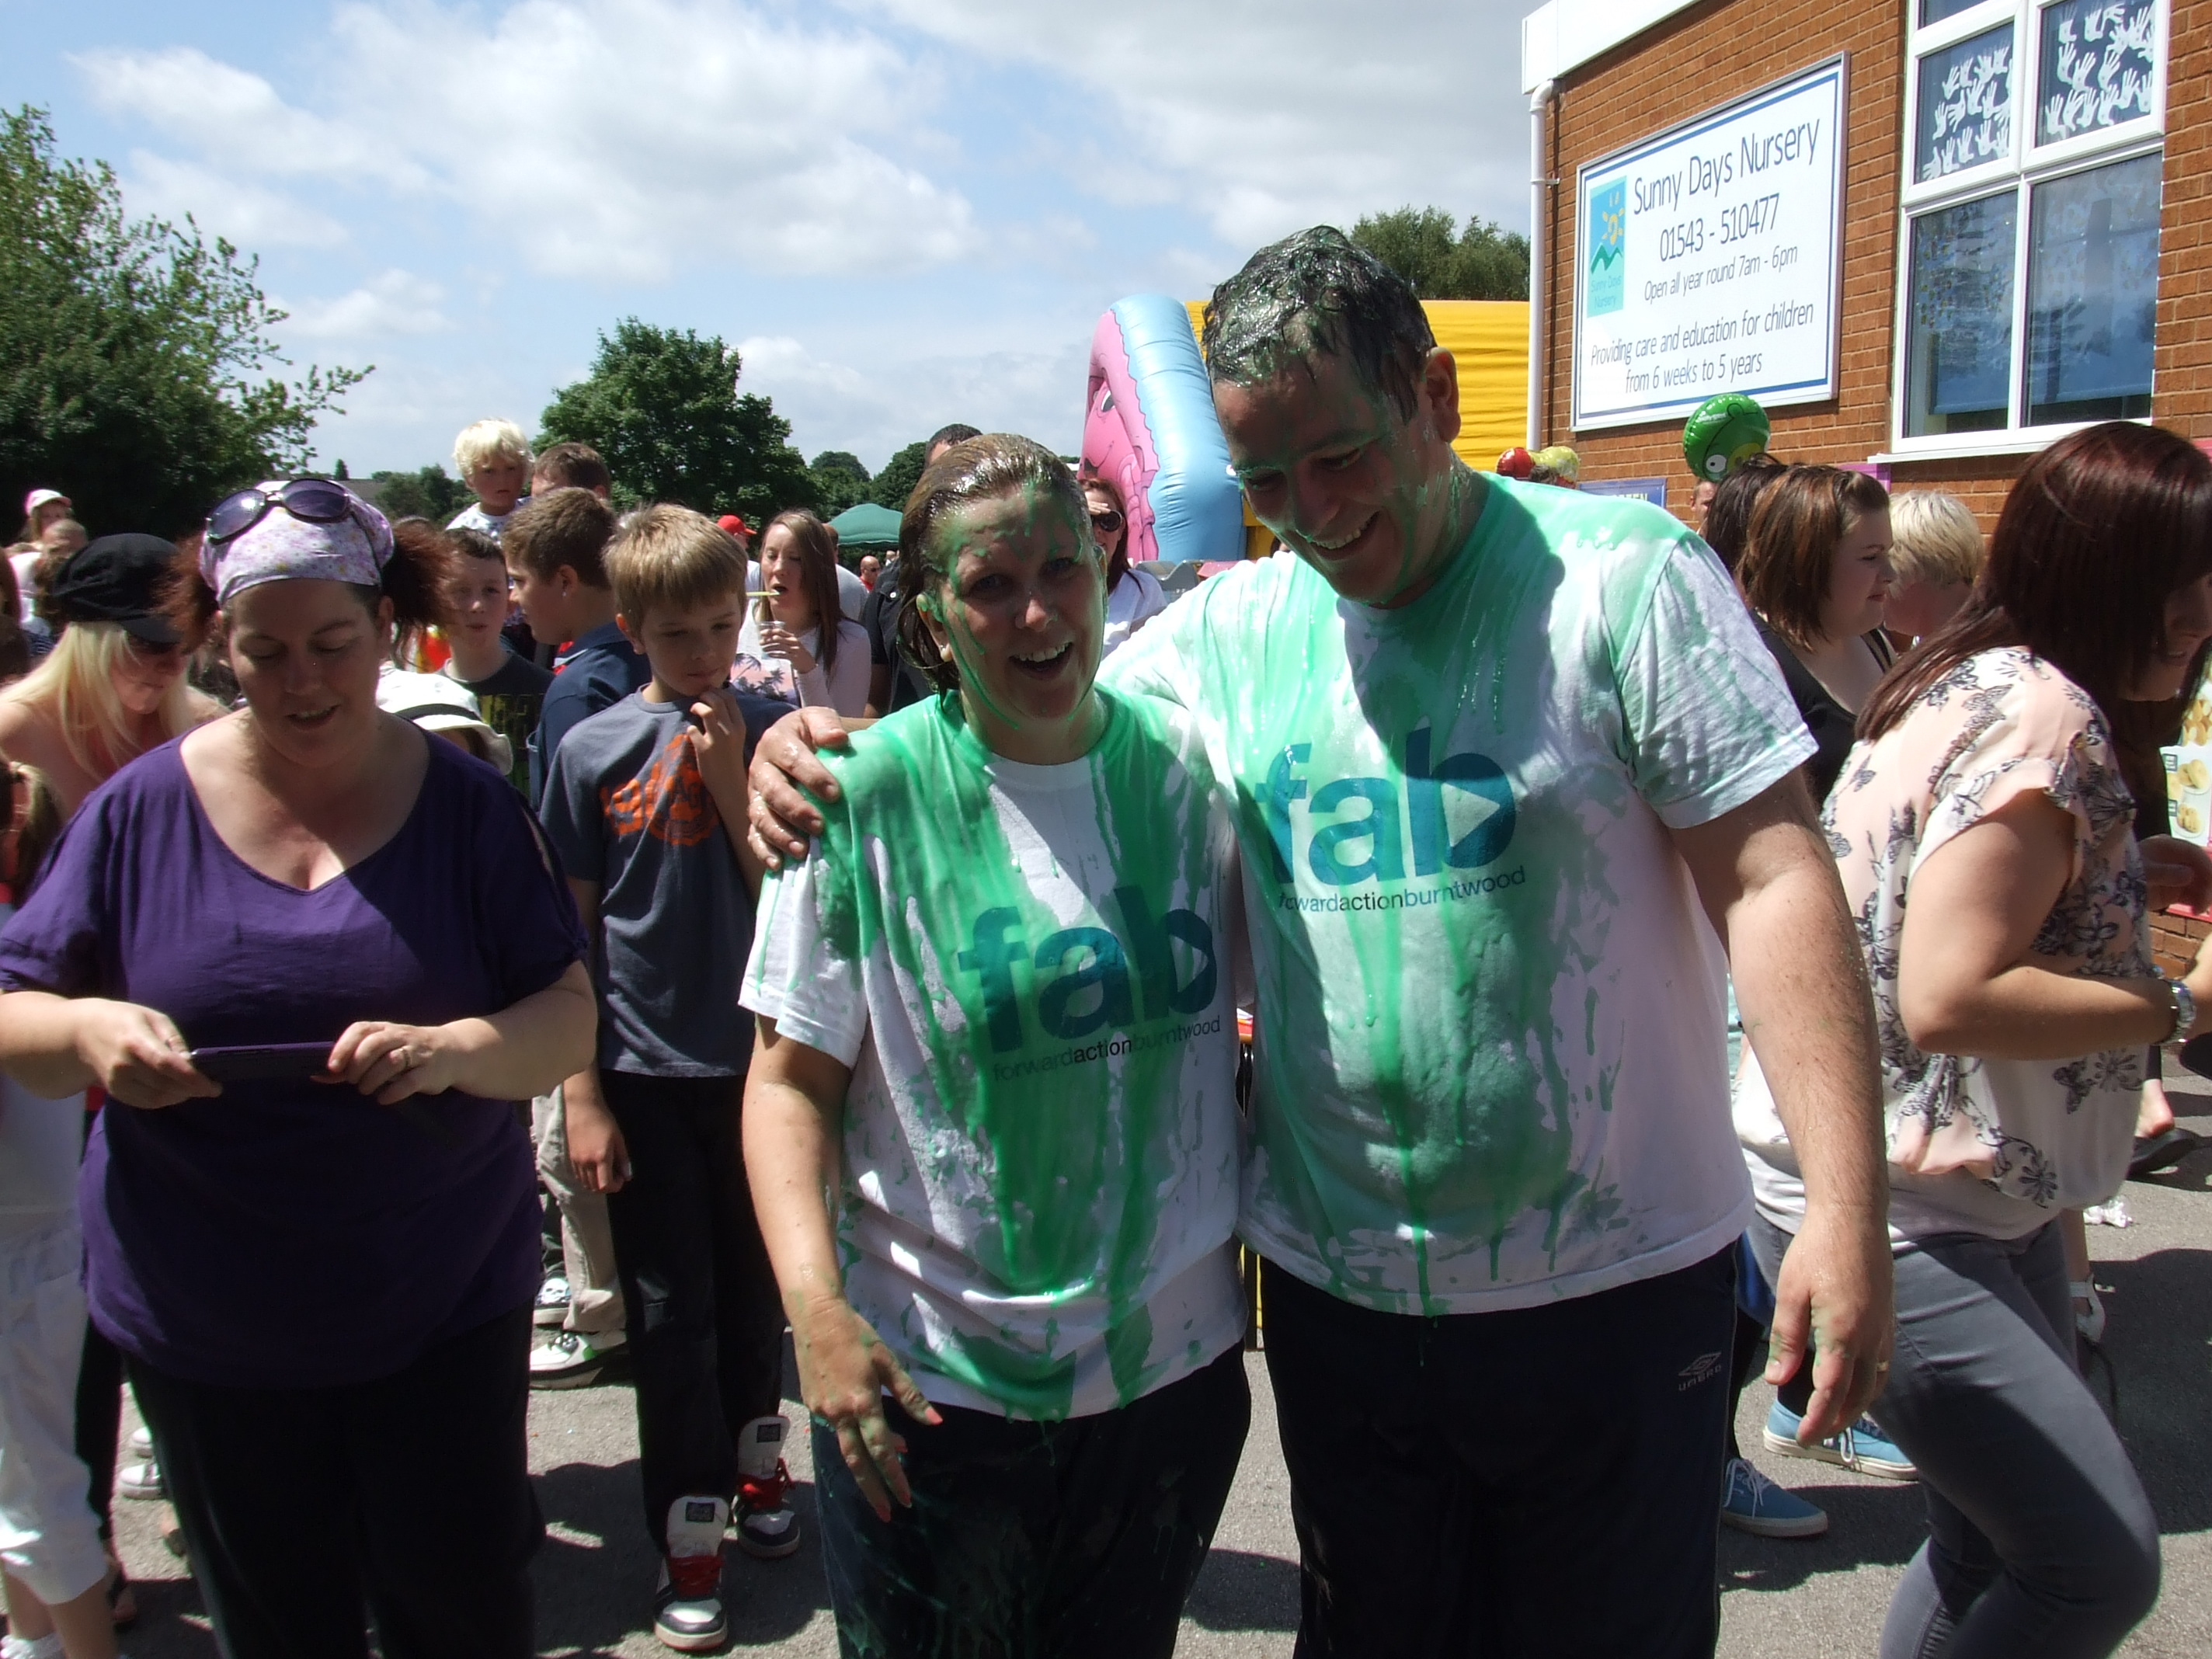 Sharon and Michael after being gunged